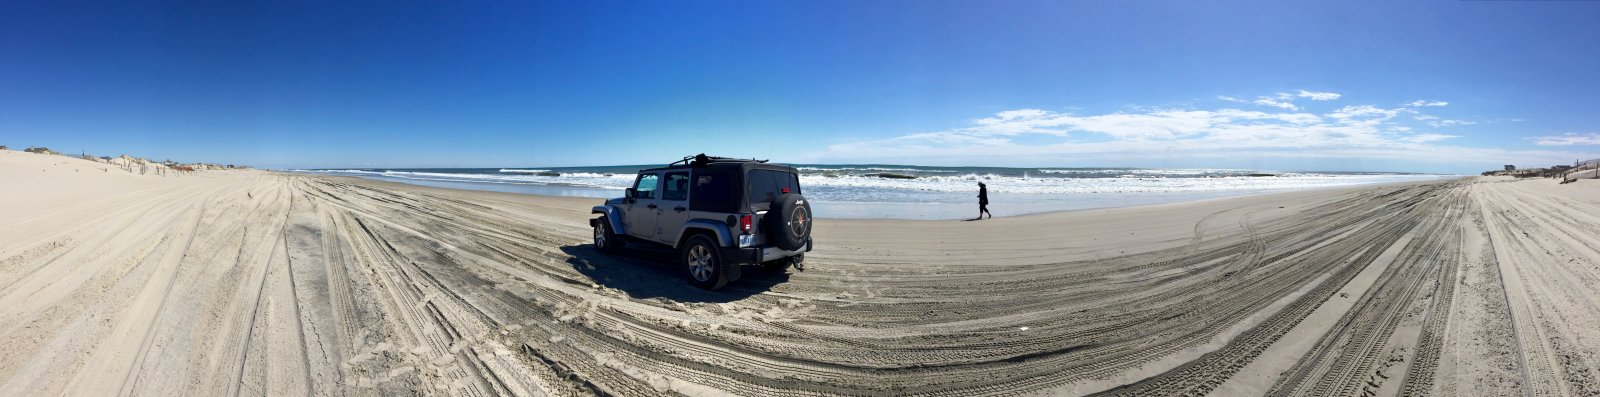 Click image for larger version  Name:Jeep At OBX NC.jpg Views:73 Size:134.3 KB ID:333522